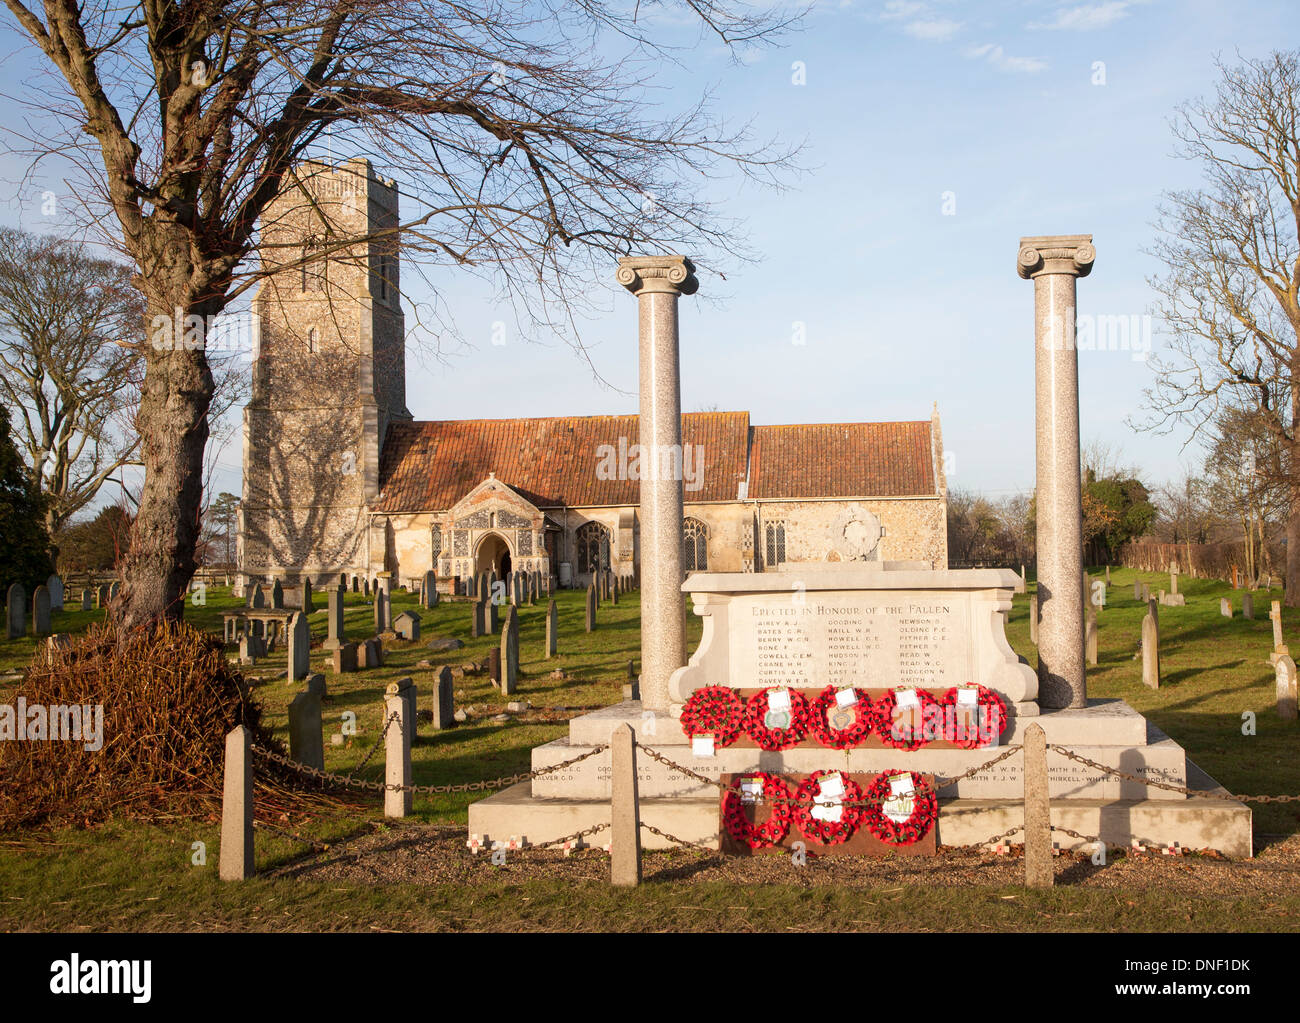 War memorial with poppy wreaths at St John the Baptists church, Snape, Suffolk, England - Stock Image